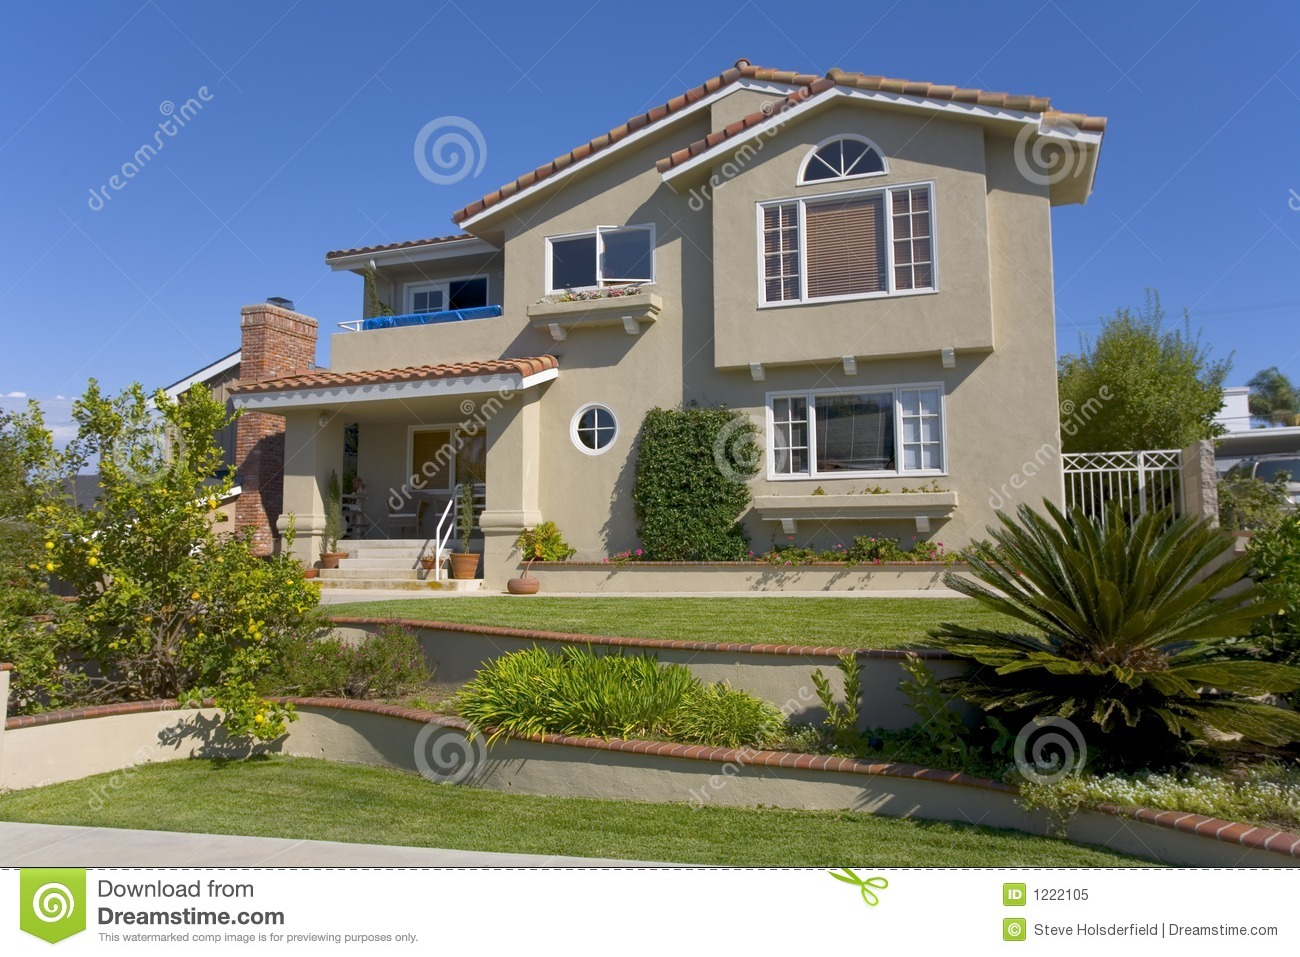 Custom home in newport beach ca royalty free stock photo for Custom beach house